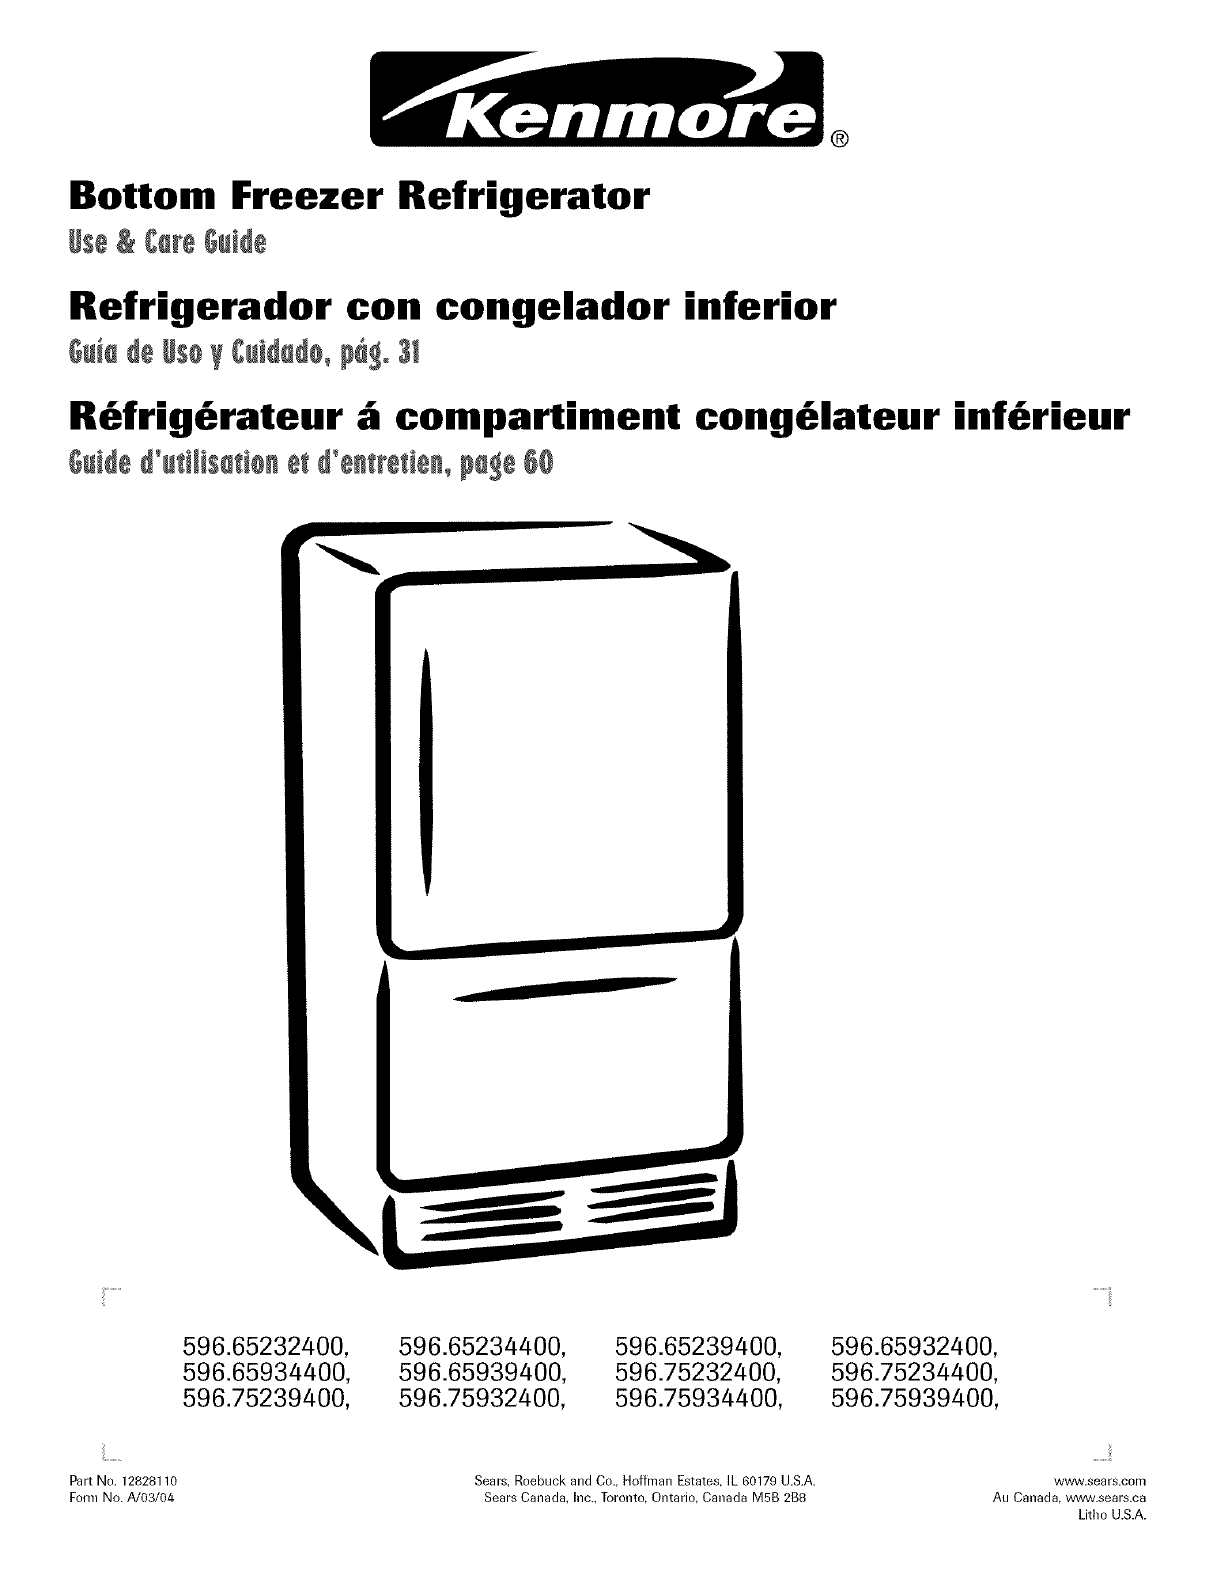 Kenmore 59665232400 User Manual REFRIGERATOR Manuals And ... on freezer schematic, magnetic refrigeration, magic chef refrigerator schematic, bosch refrigerator schematic, amana refrigerator schematic, james harrison, internet refrigerator, refrigerator truck, servel refrigerator schematic, haier refrigerator schematic, frigidaire refrigerator schematic, hair dryer, refrigerator parts schematic, ge refrigerator schematic, maytag refrigerator schematic, whirlpool refrigerator schematic, viking refrigerator schematic, kenmore upright freezer model 253, samsung refrigerator schematic, roper refrigerator schematic, absorption refrigerator, lg refrigerator schematic, pot-in-pot refrigerator, kitchenaid refrigerator schematic, hotpoint refrigerator schematic, refrigerator wiring schematic, dometic refrigerator schematic, refrigerator car, einstein refrigerator,